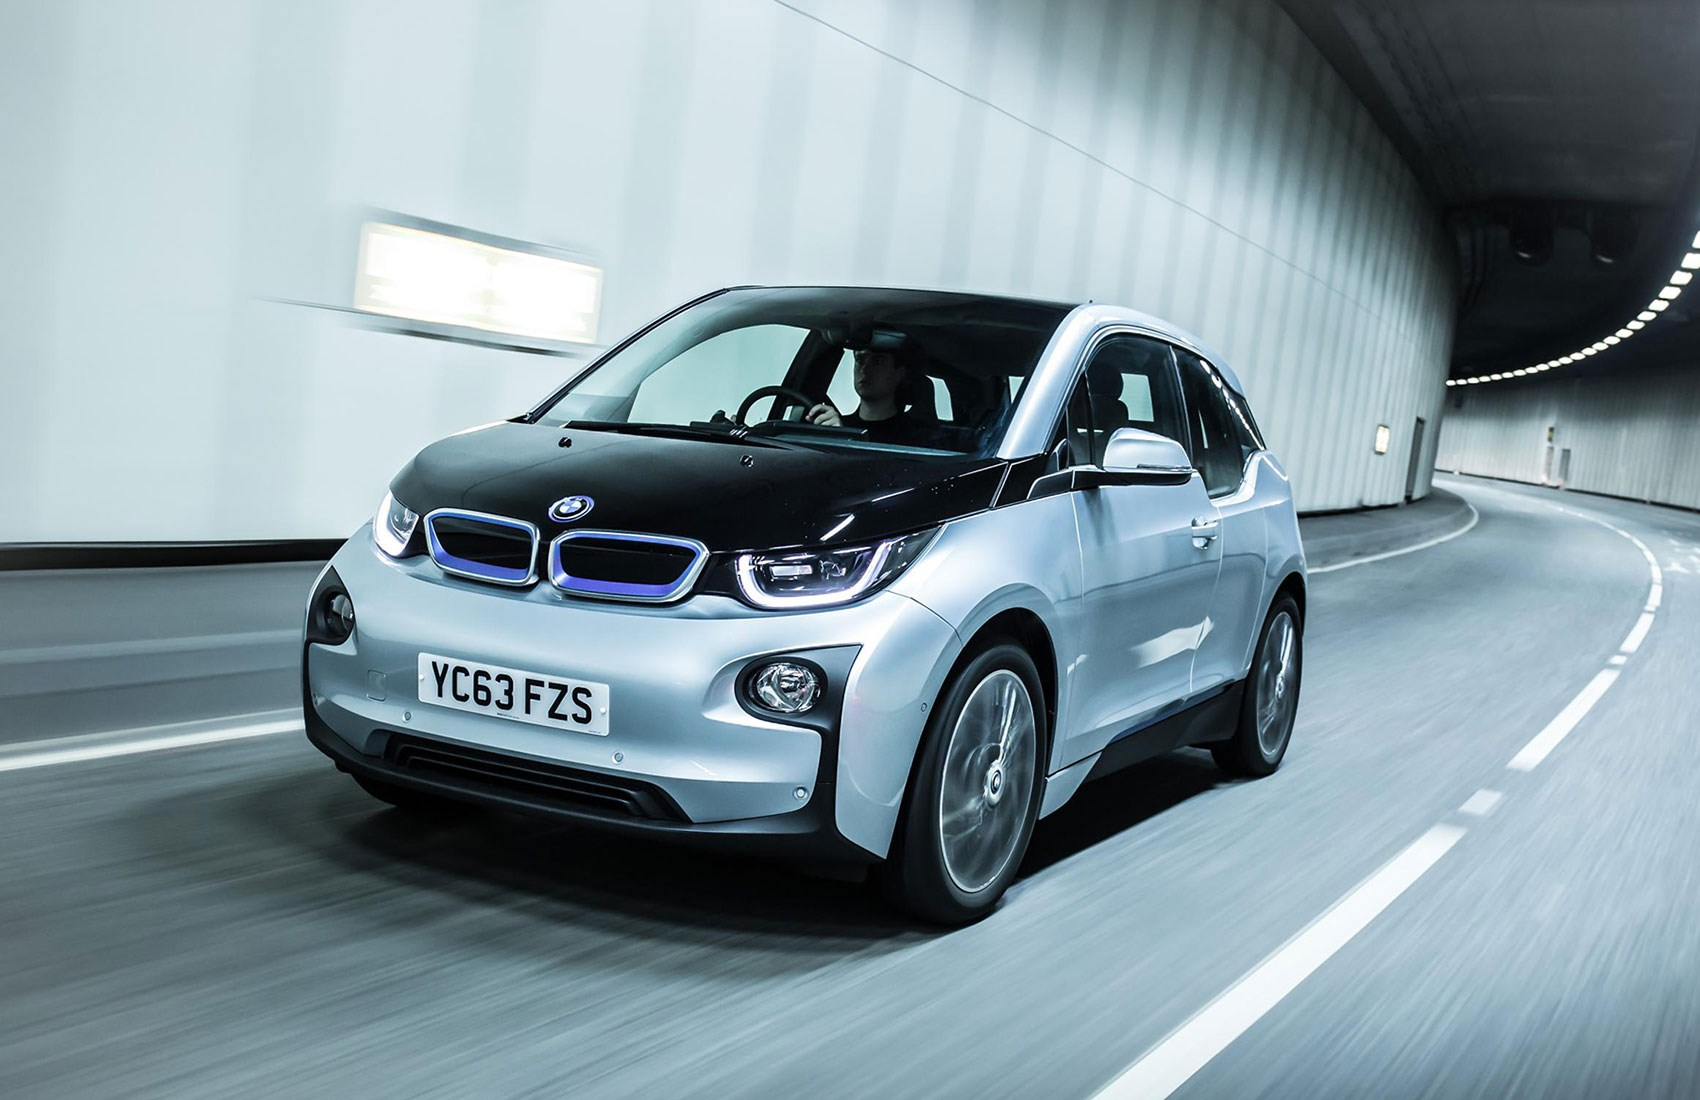 image bmw sportiness getting extra s an dose electric is sporty of car edition